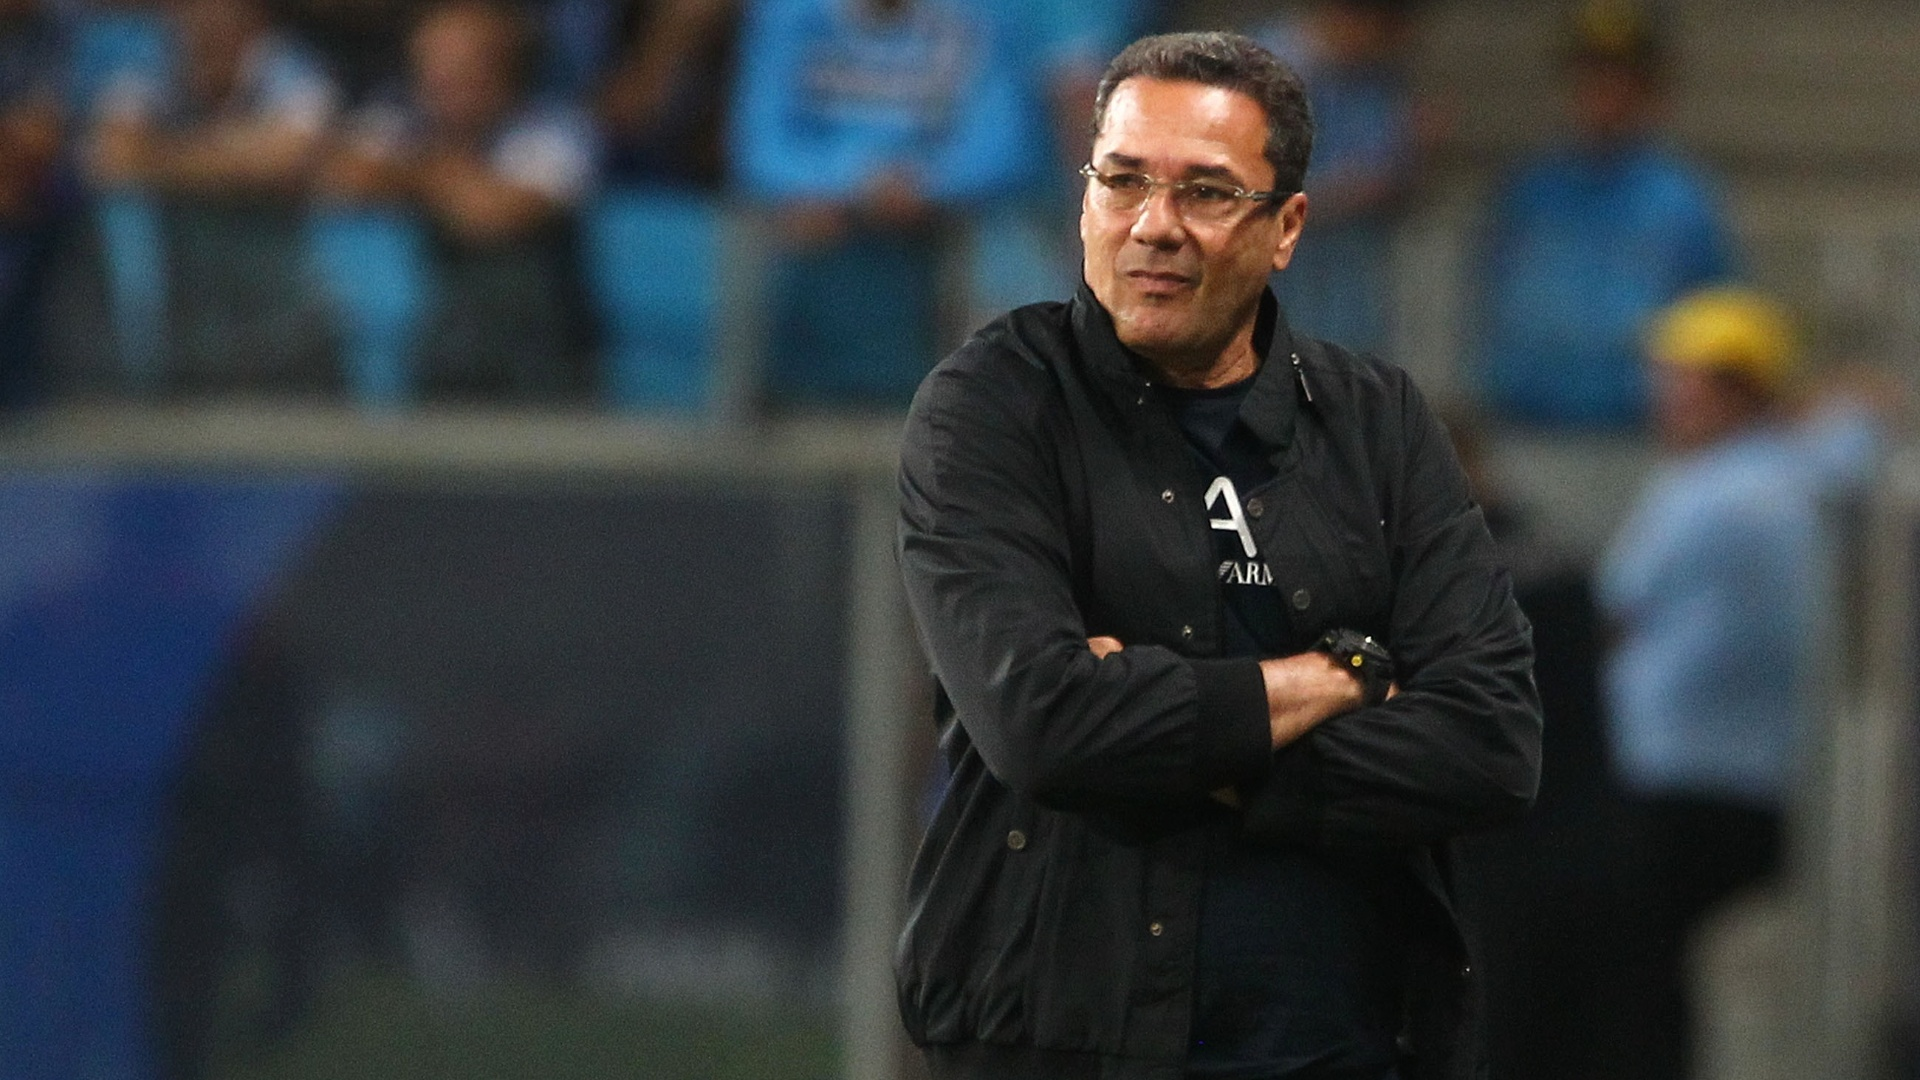 Vanderlei Luxemburgo se preocupa com desgaste de jogadores do Grmio no Gaucho